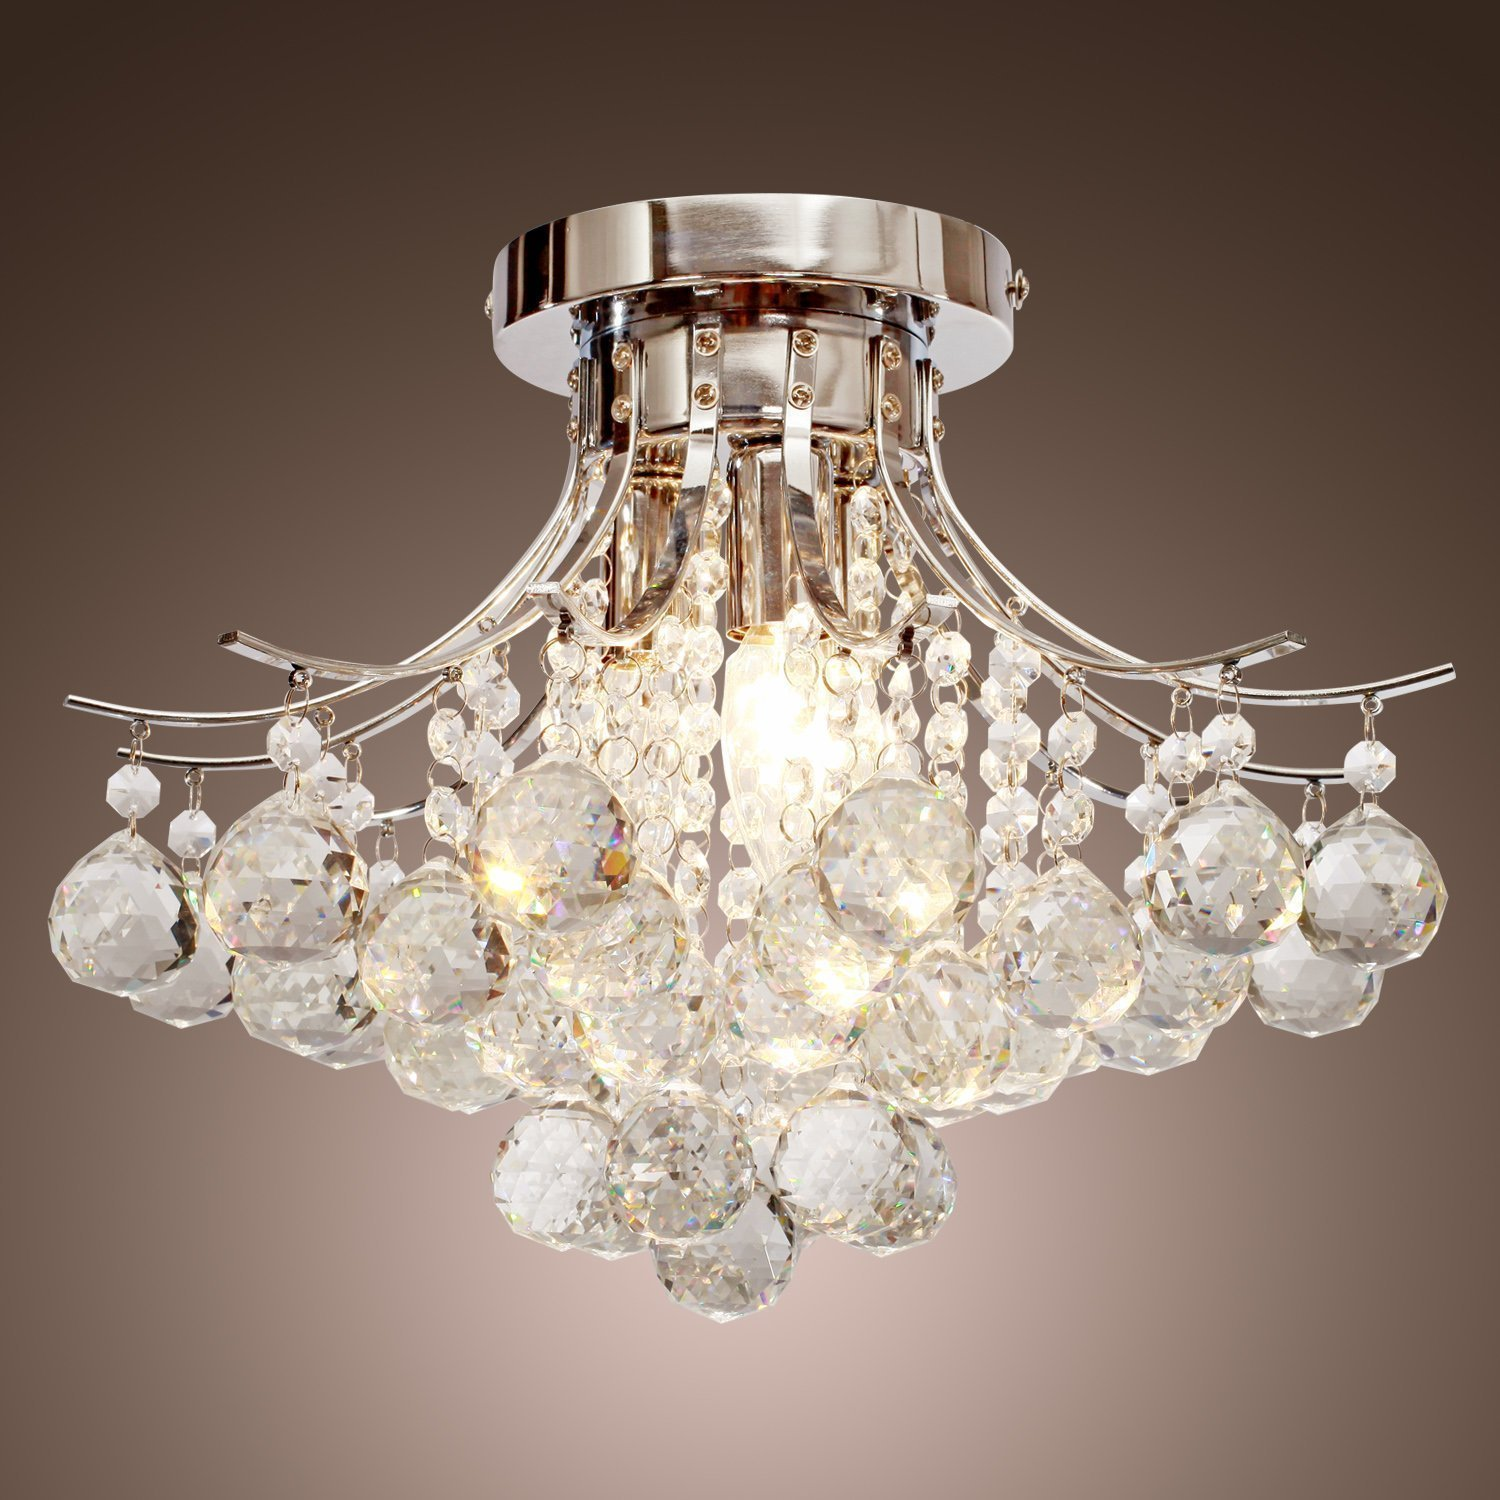 LOCO' Chrome Finish Crystal Chandelier with 3 lights Mini Style